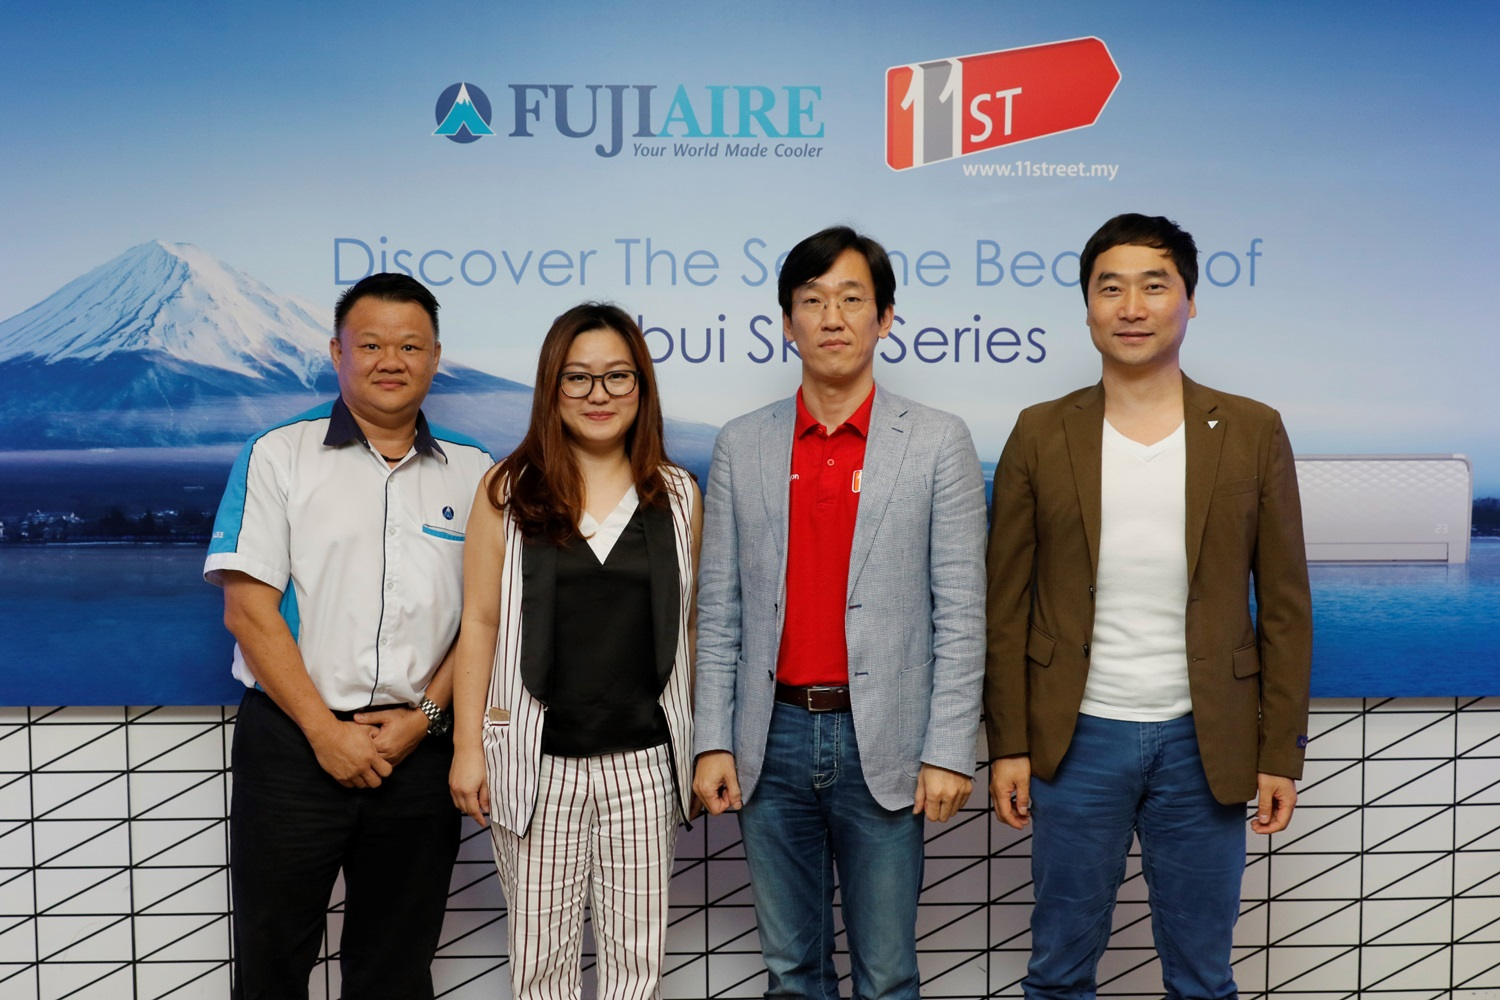 Fujiaire & 11street representatives at the launch of the Fujiaire Shibui air conditioner series